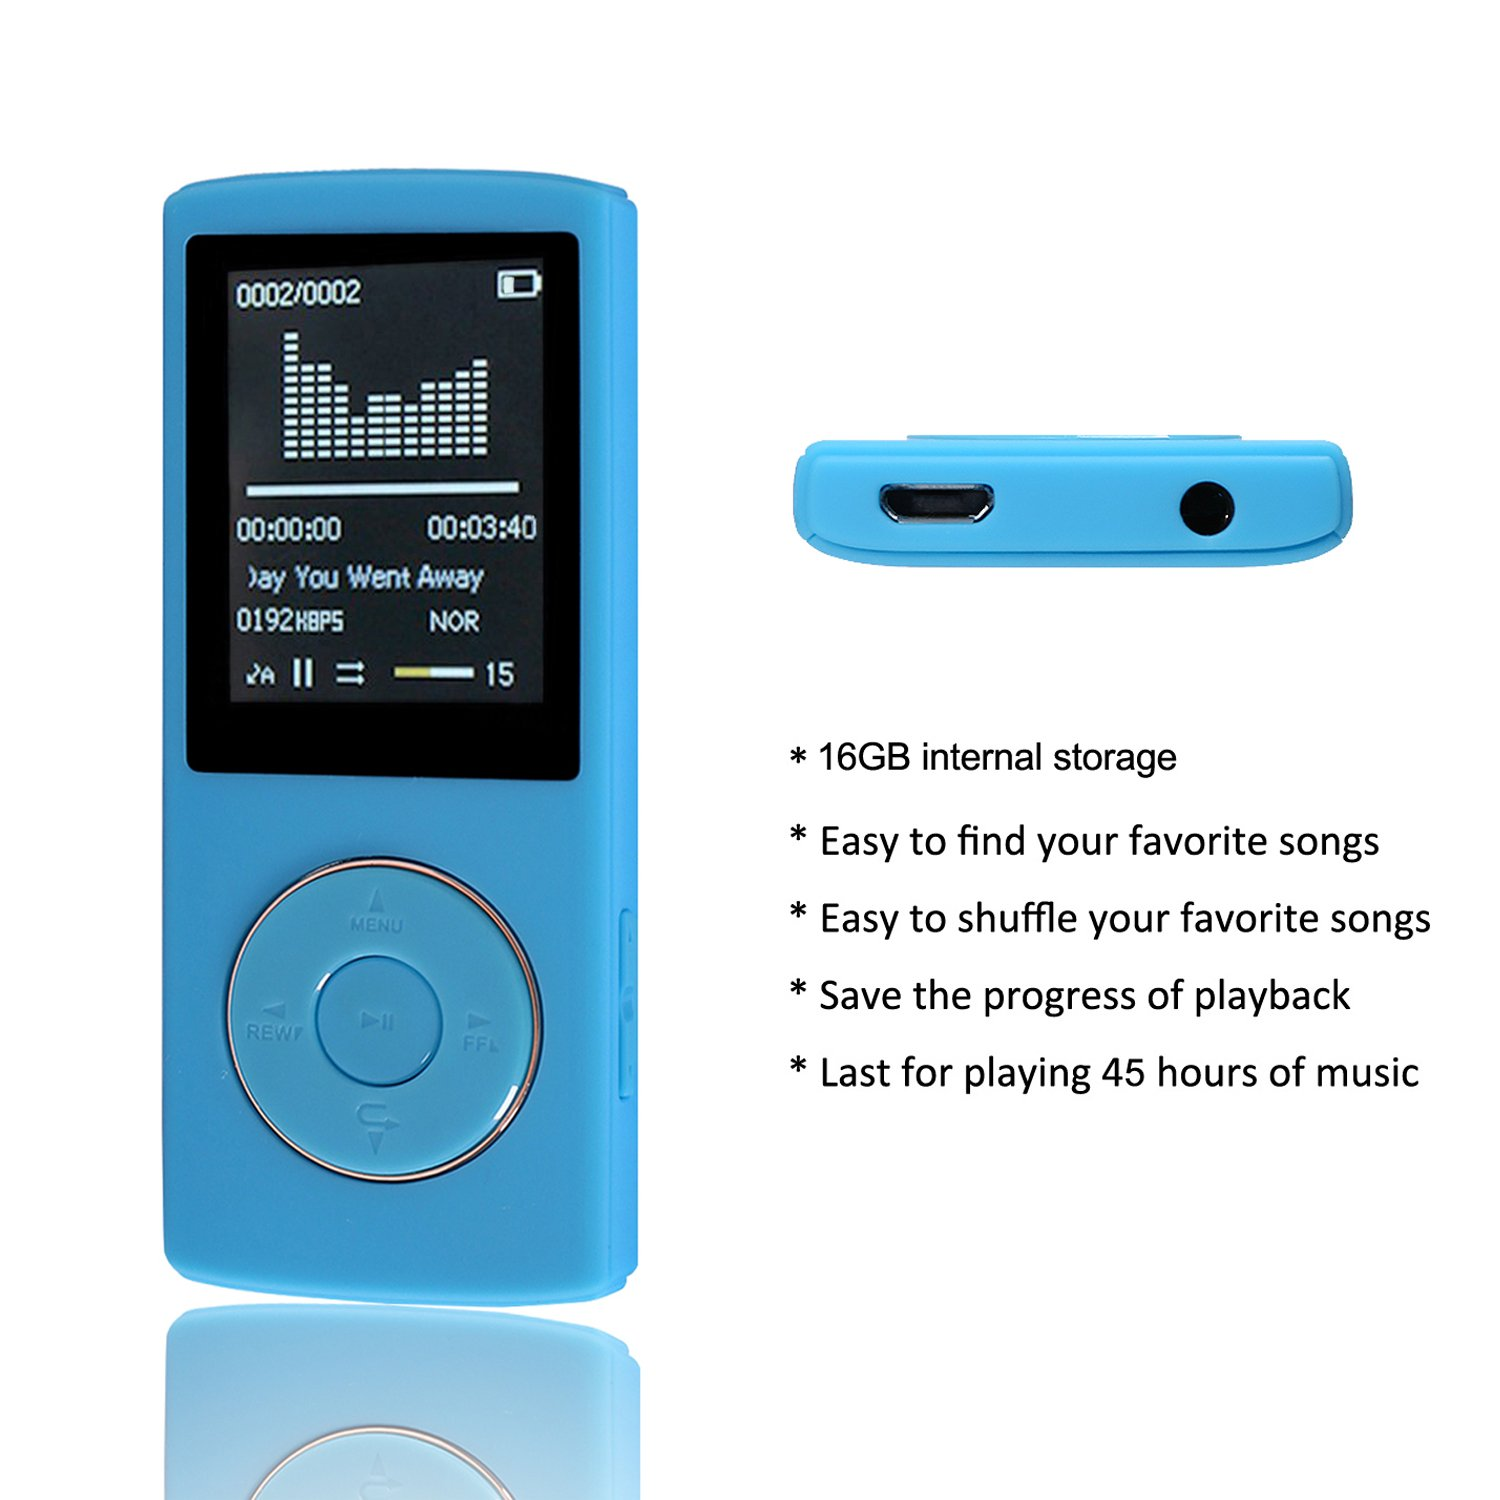 HccToo Music Player 16GB Portable Lossless Sound MP3: Amazon.co.uk:  Electronics